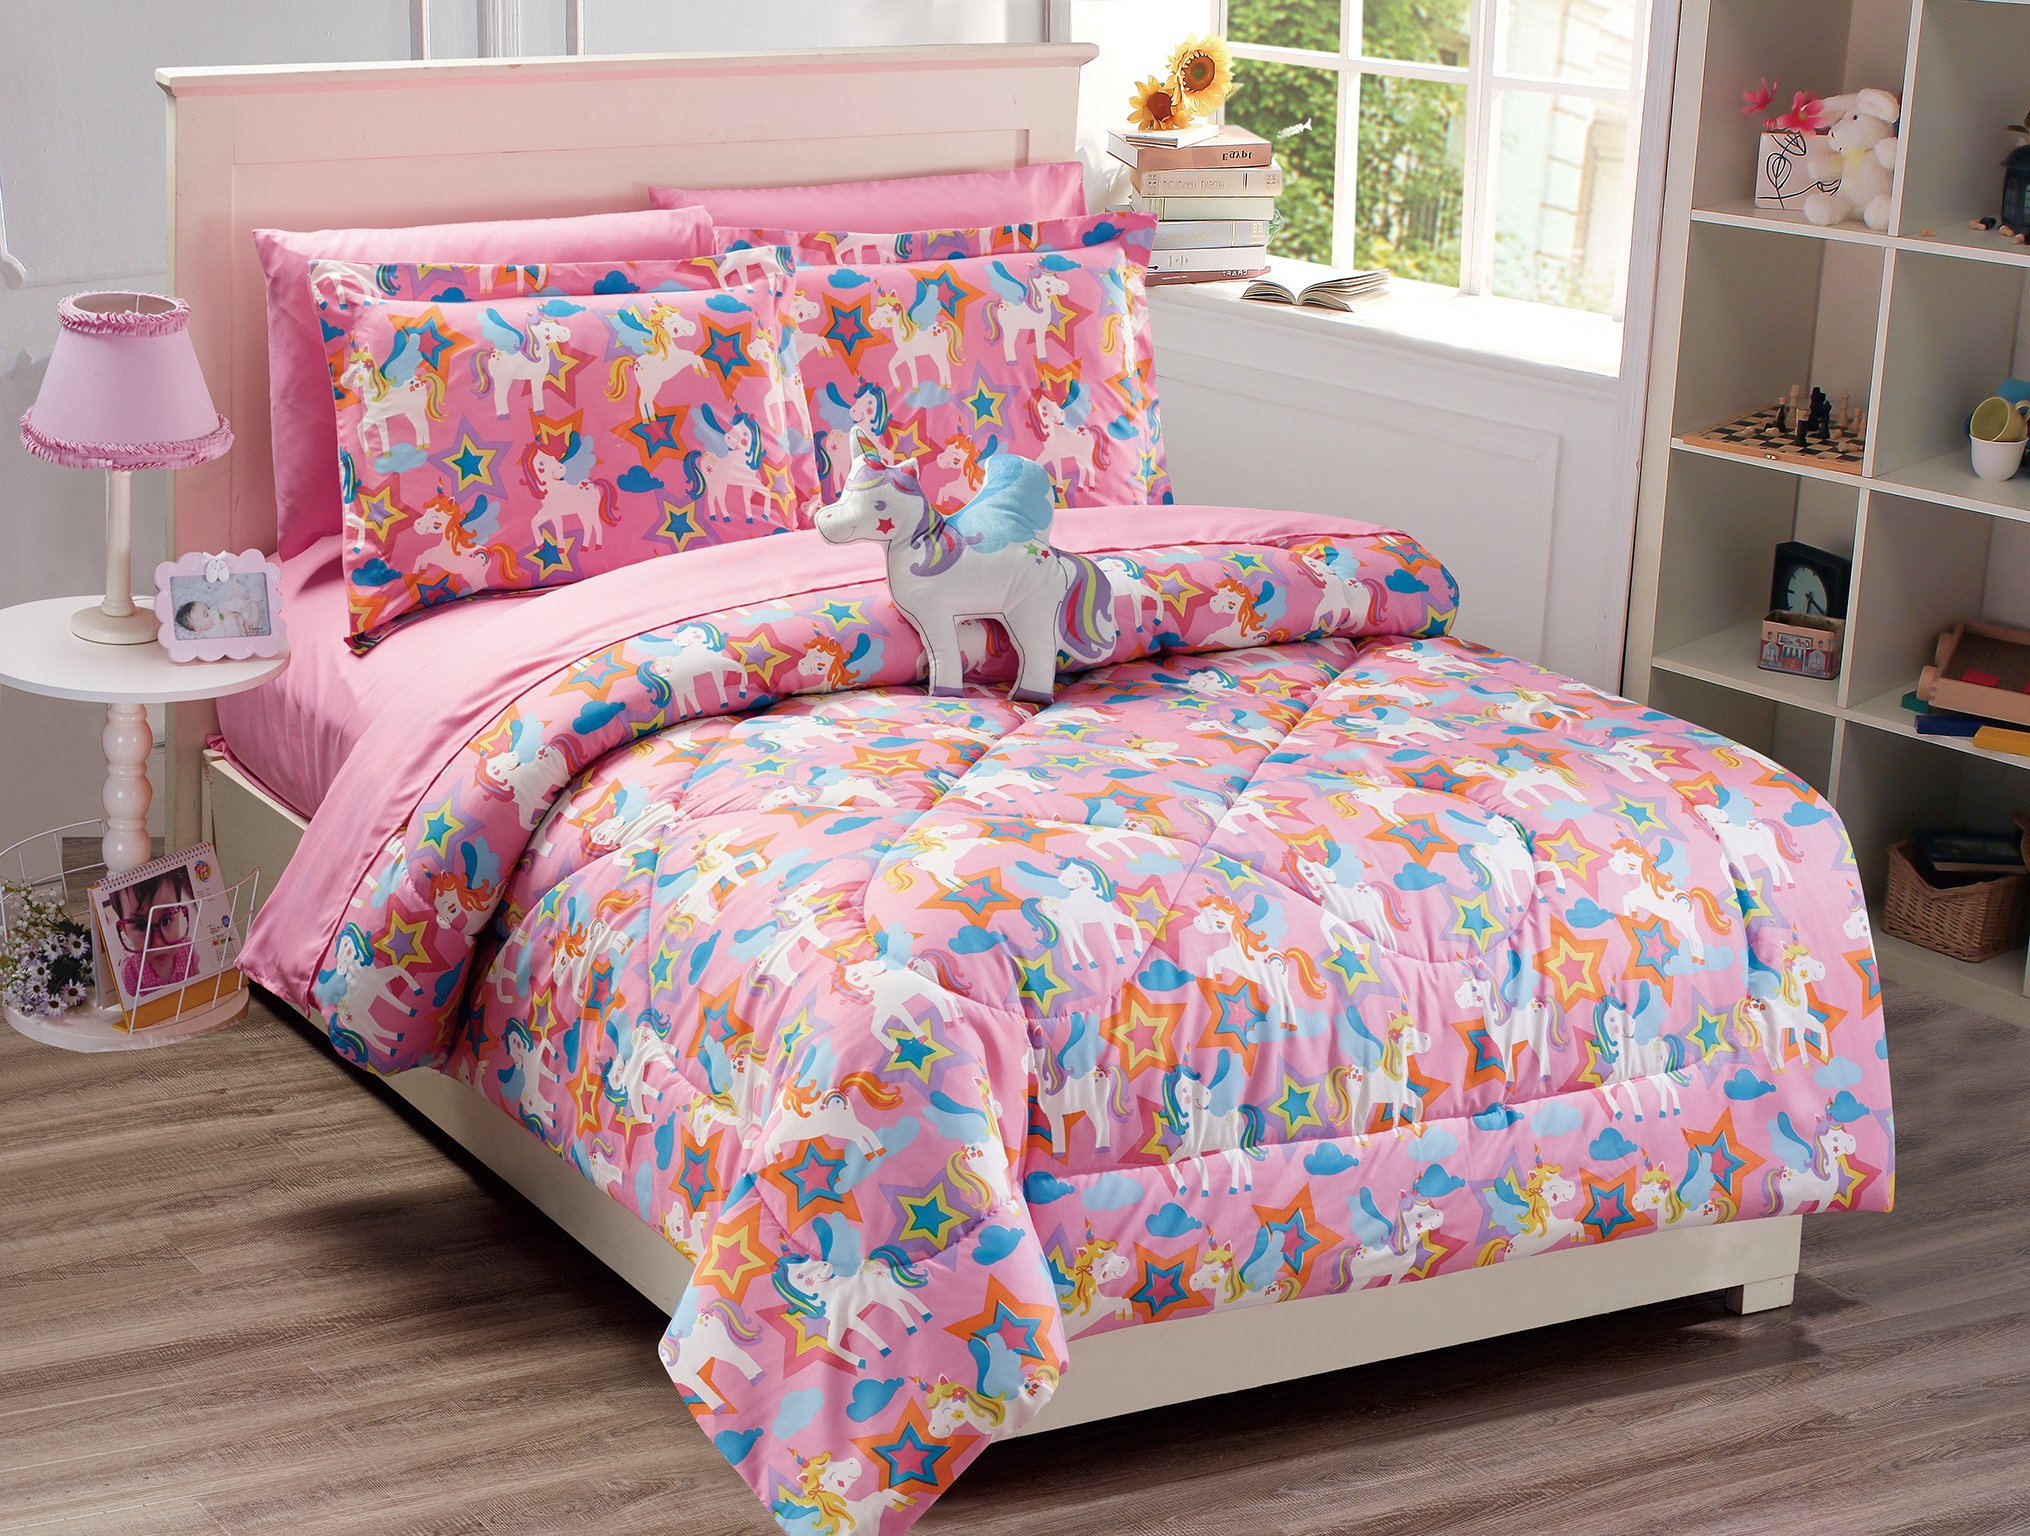 Elegant Home Multicolor Pink Purple White Blue Orange Unicorn Design Fun 8 Piece Comforter Bedding Set for Girls / Kids Bed In a Bag With Sheet Set and Decorative Toy Pillow No. Pony (Full)